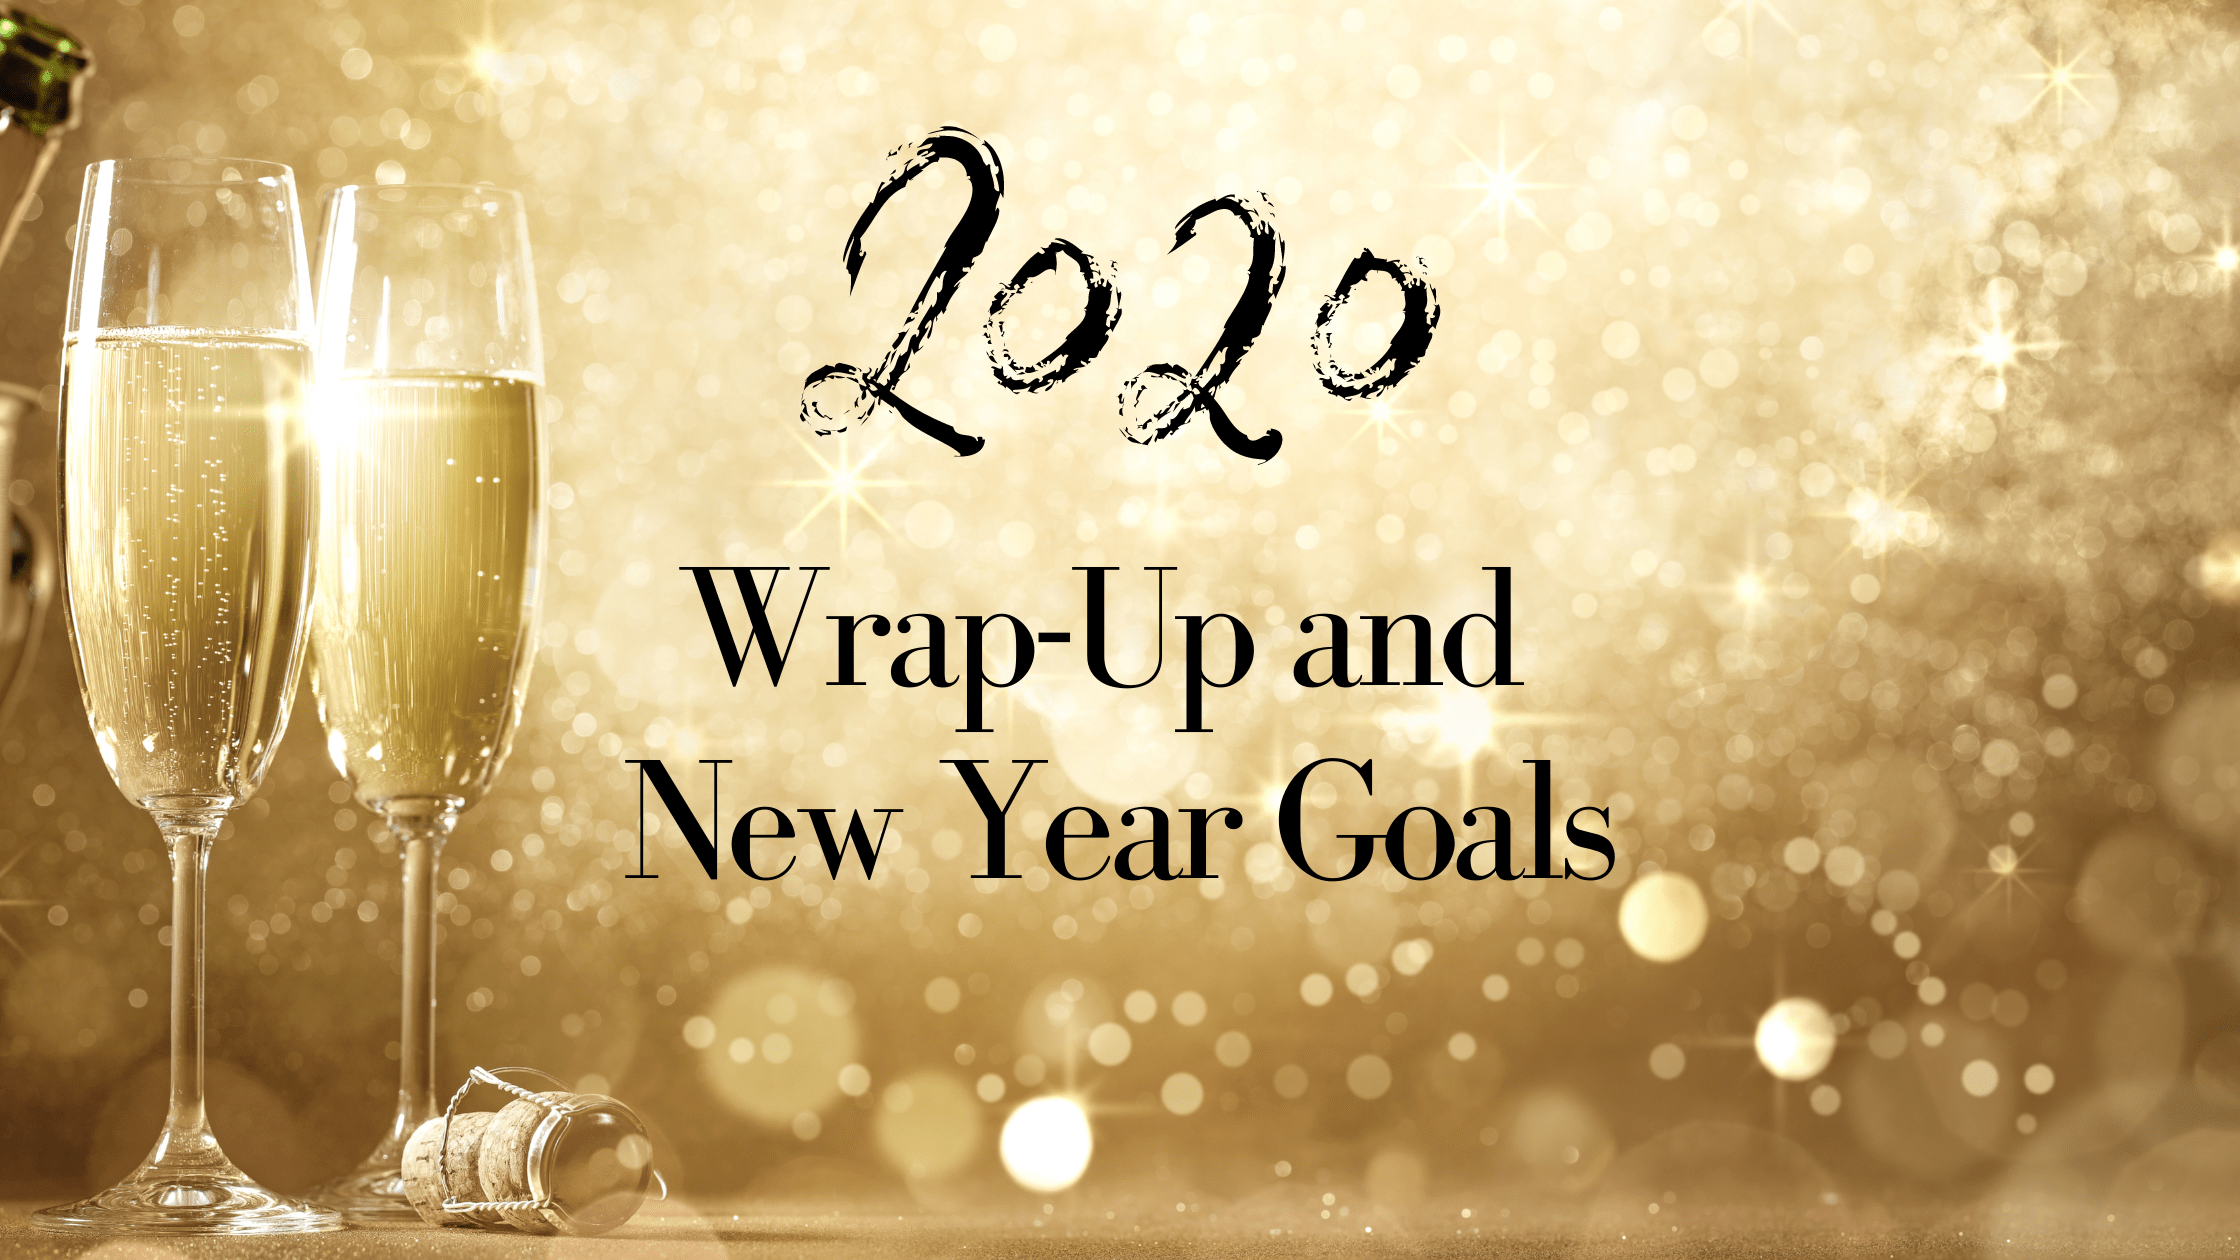 Wrap-Up-and-New-Year-Goals-BANNER-2